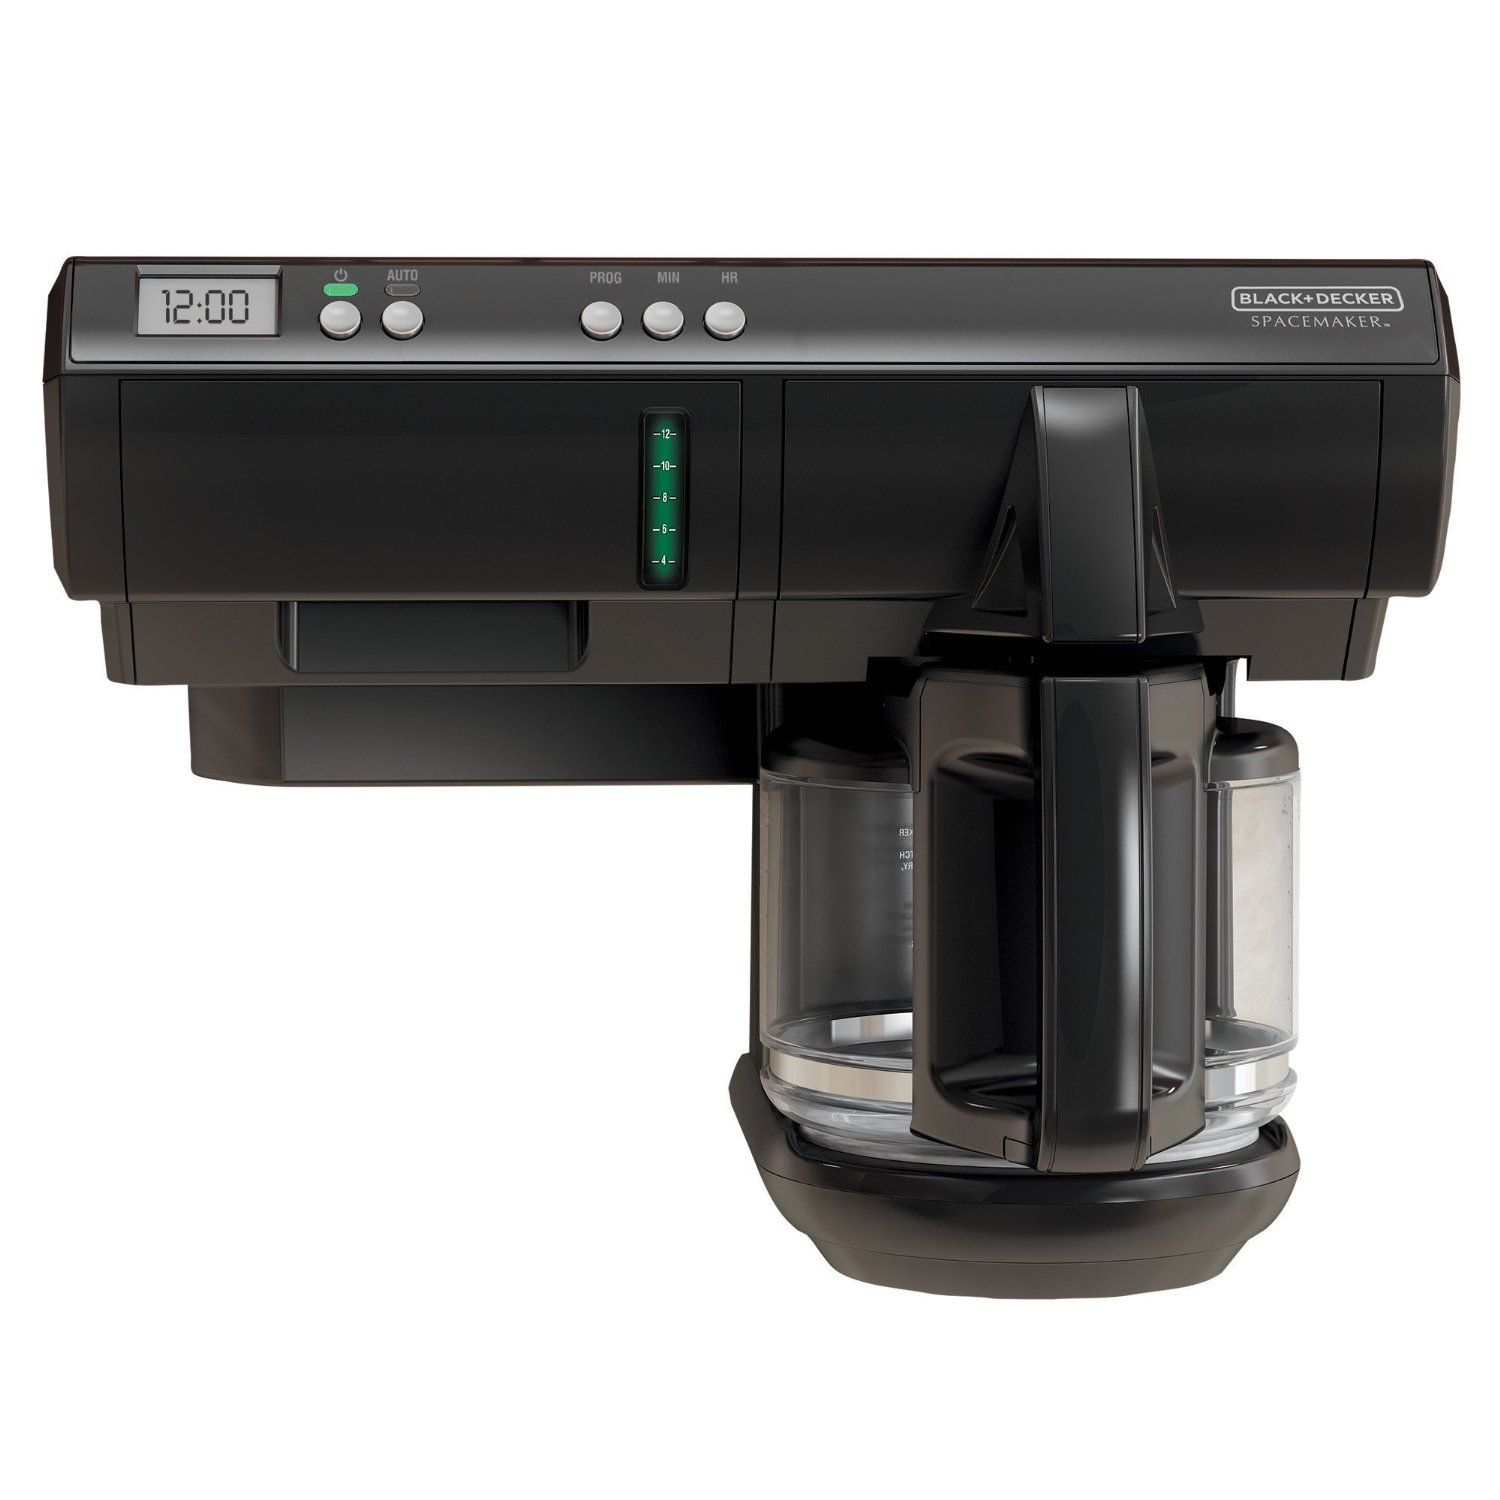 Black Decker SpaceMaker Thermal SDC850 8 Cups Coffee Maker Black